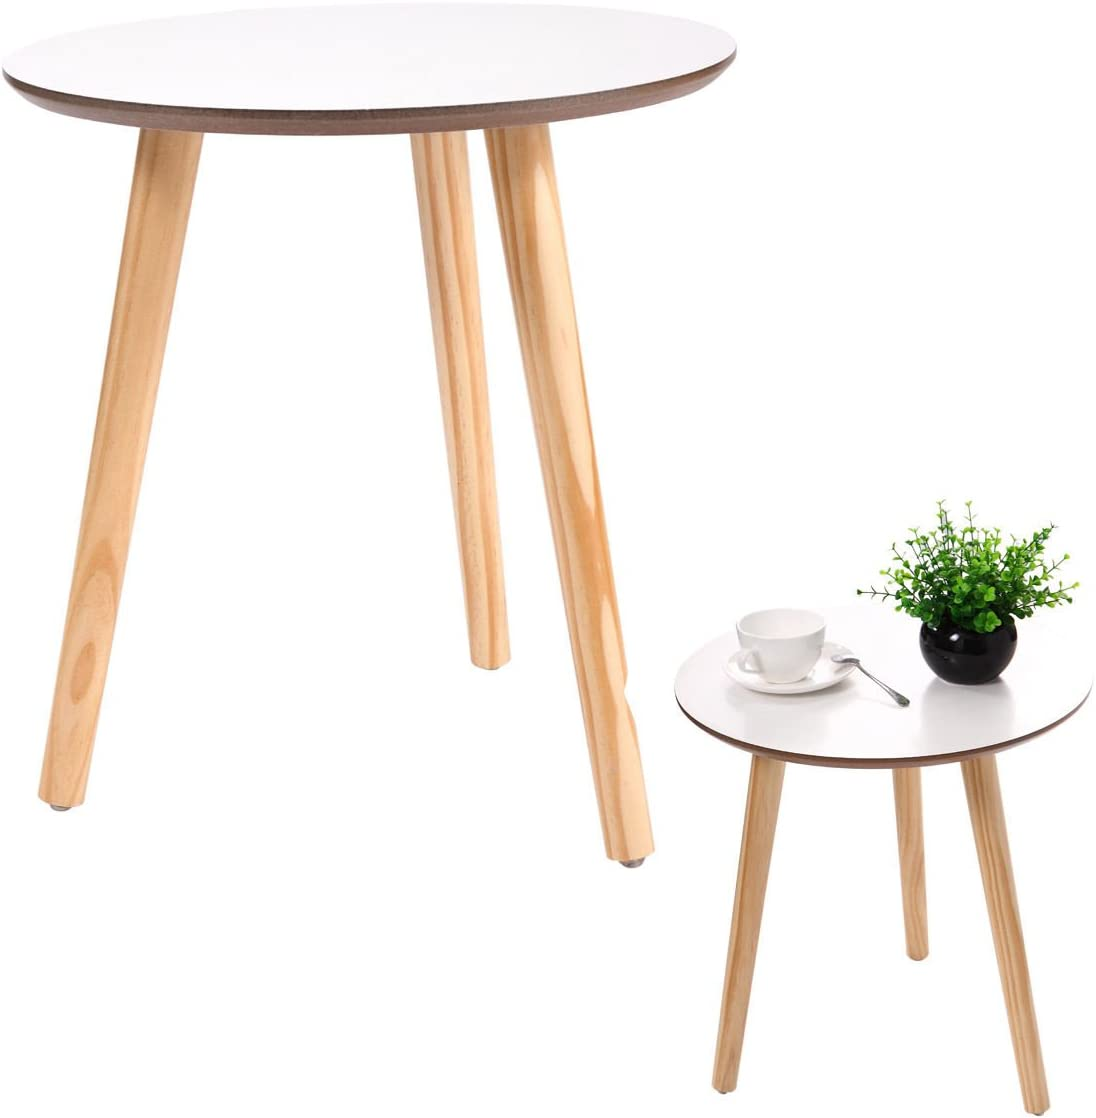 New White Modern Round Coffee Table Simple Style End Table W Pine Wood Legs